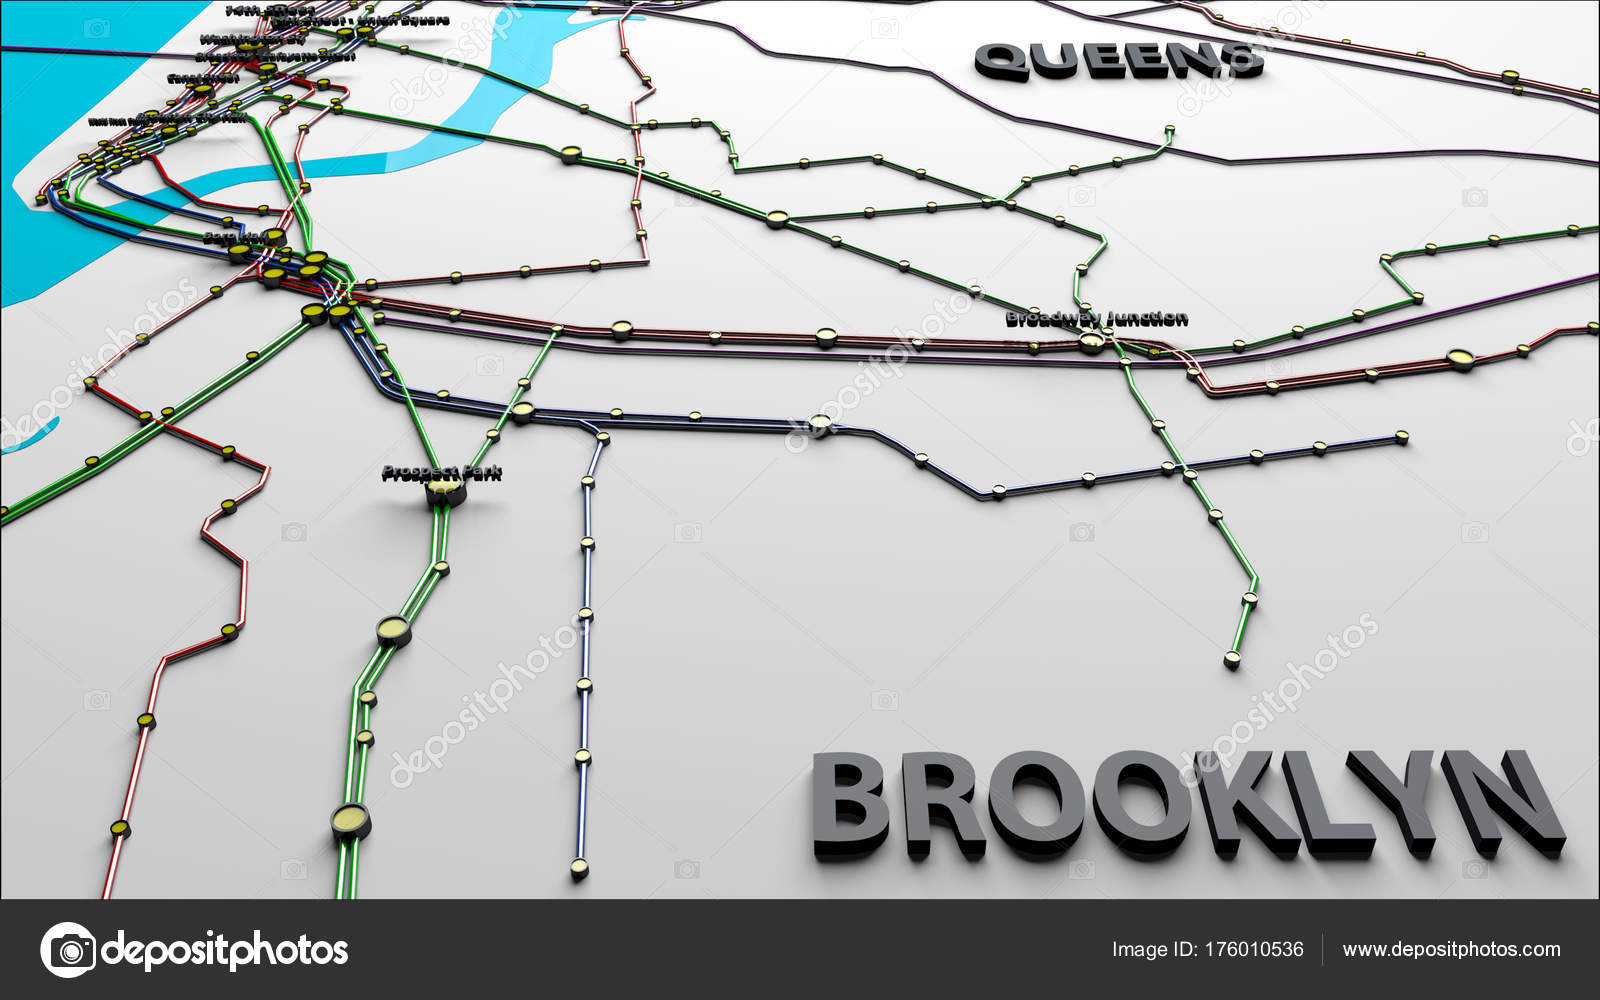 Subway lines and stations of new york city subways brooklyn quee subway lines and stations of new york city subways brooklyn queens 3d illustrationthis is not the official nyc subway map photo by boscorelli biocorpaavc Gallery